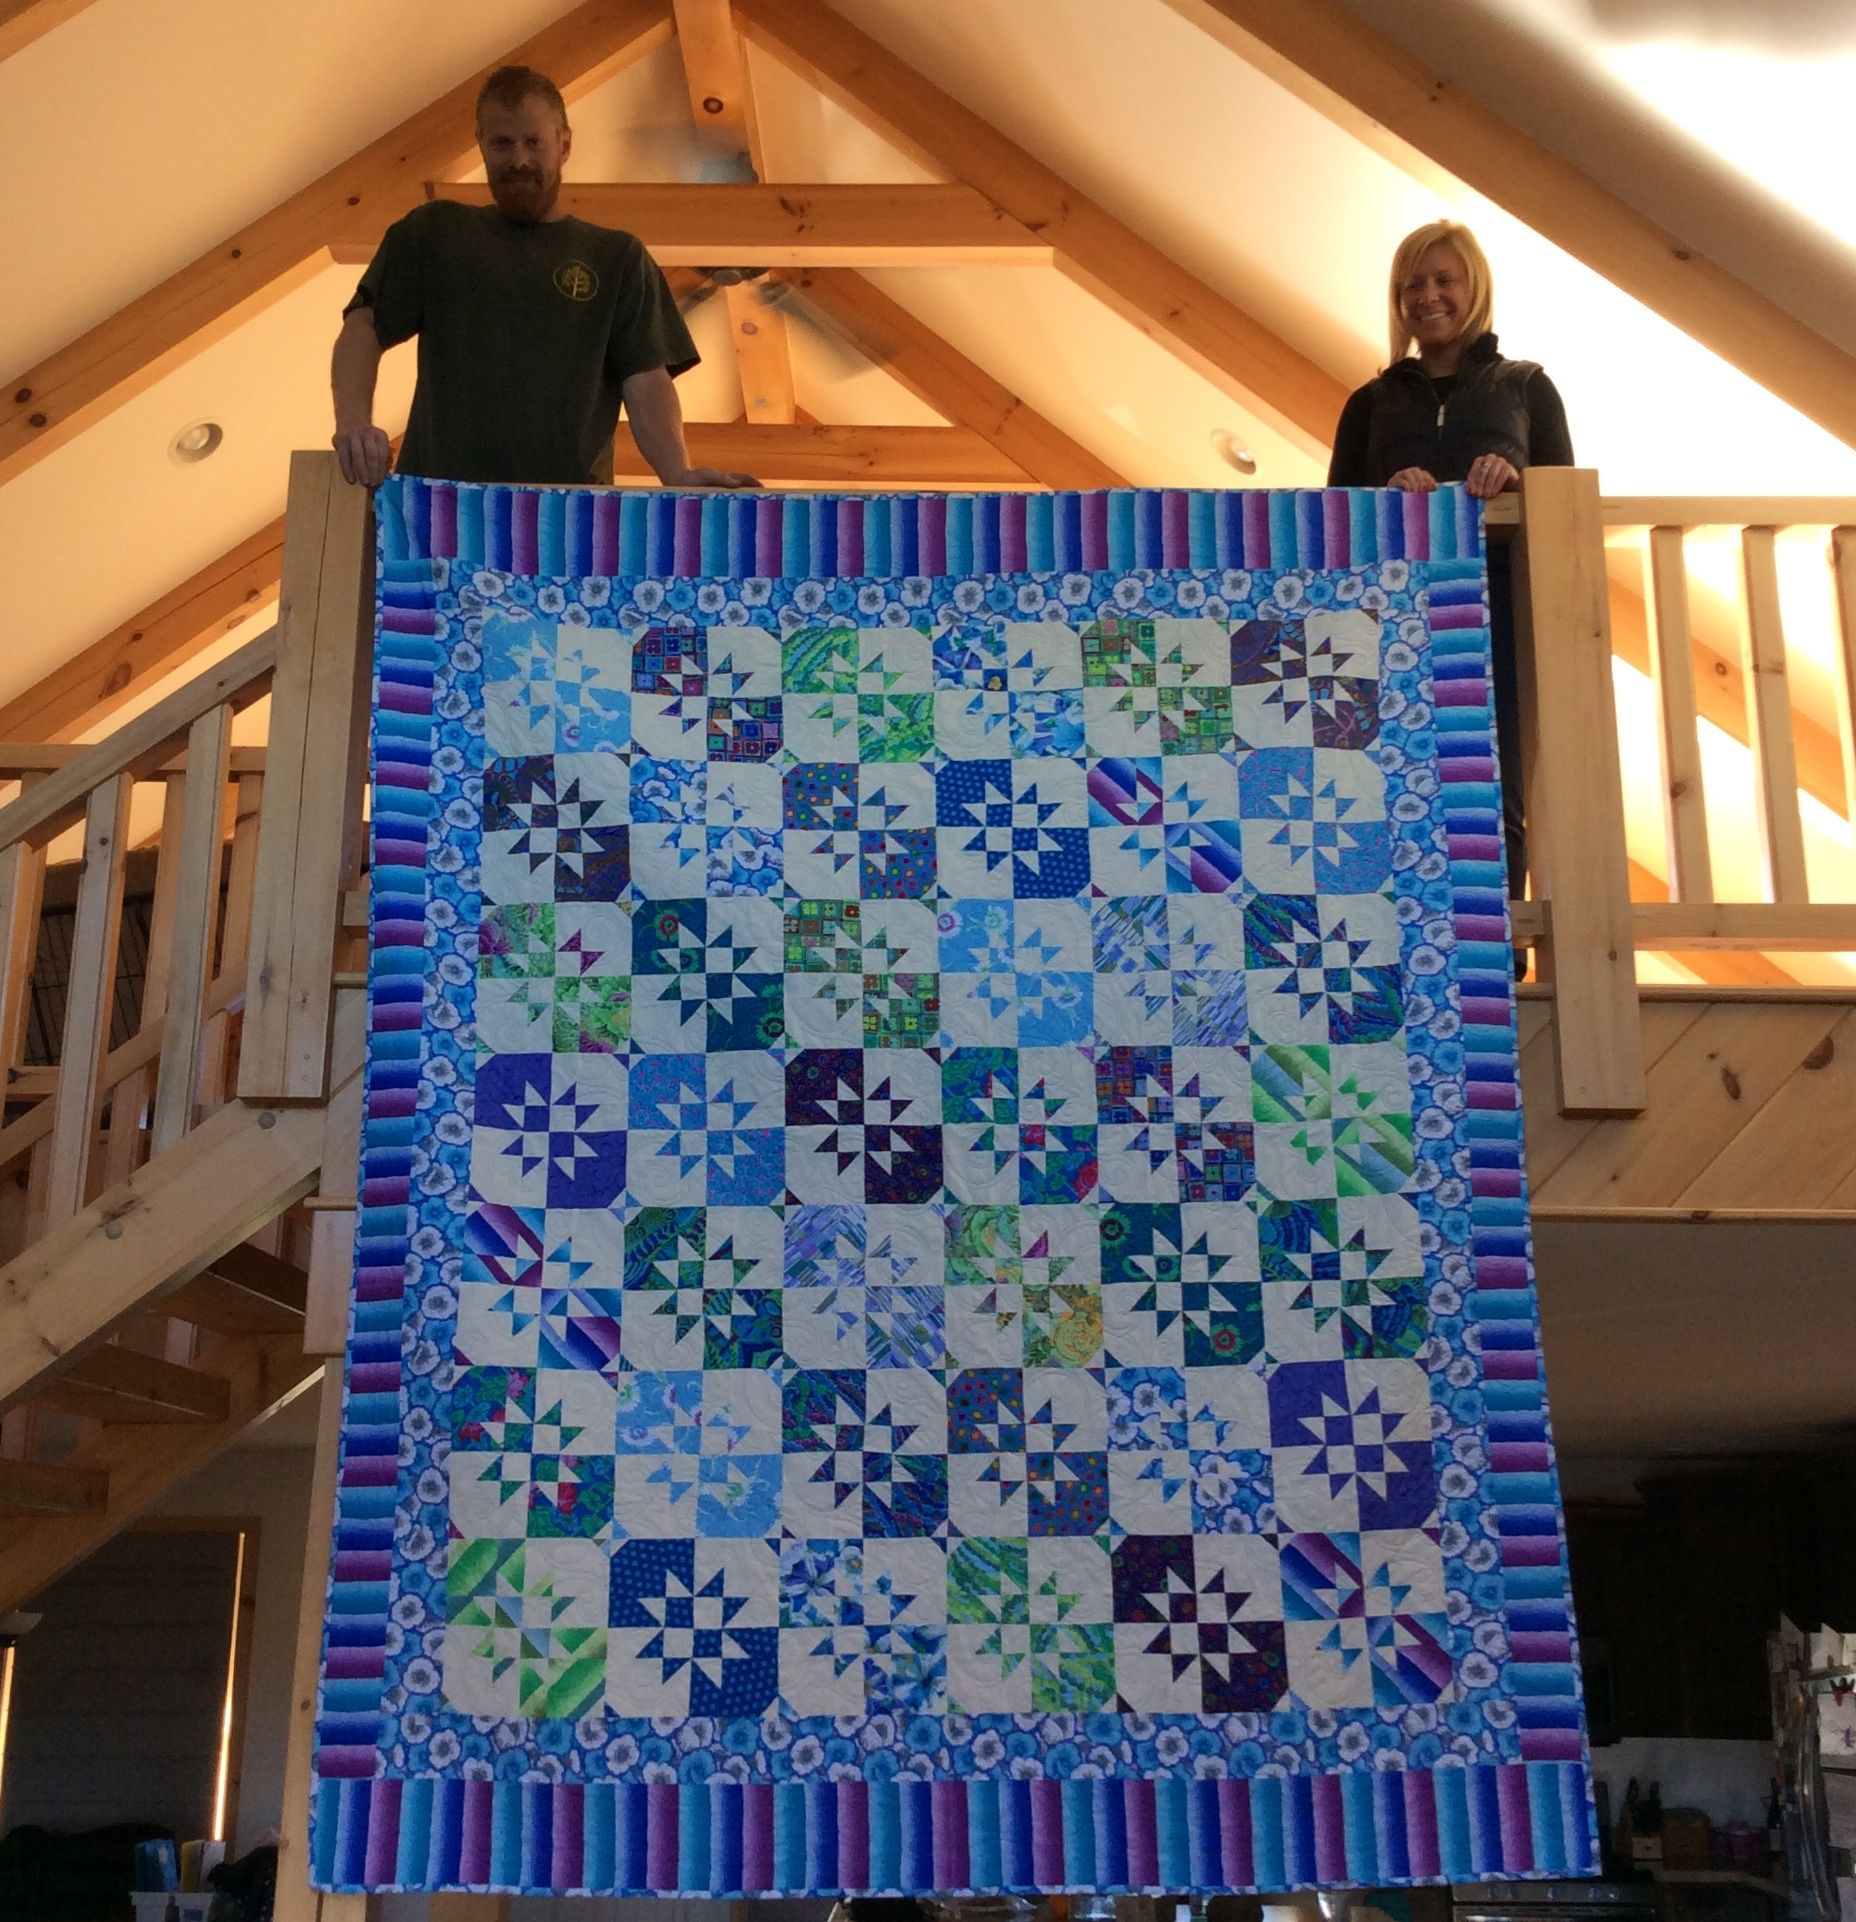 Disappearing Hourglass Quilt. Fun quilt from Missouri Star Quilting. Gave to my son and his wife.